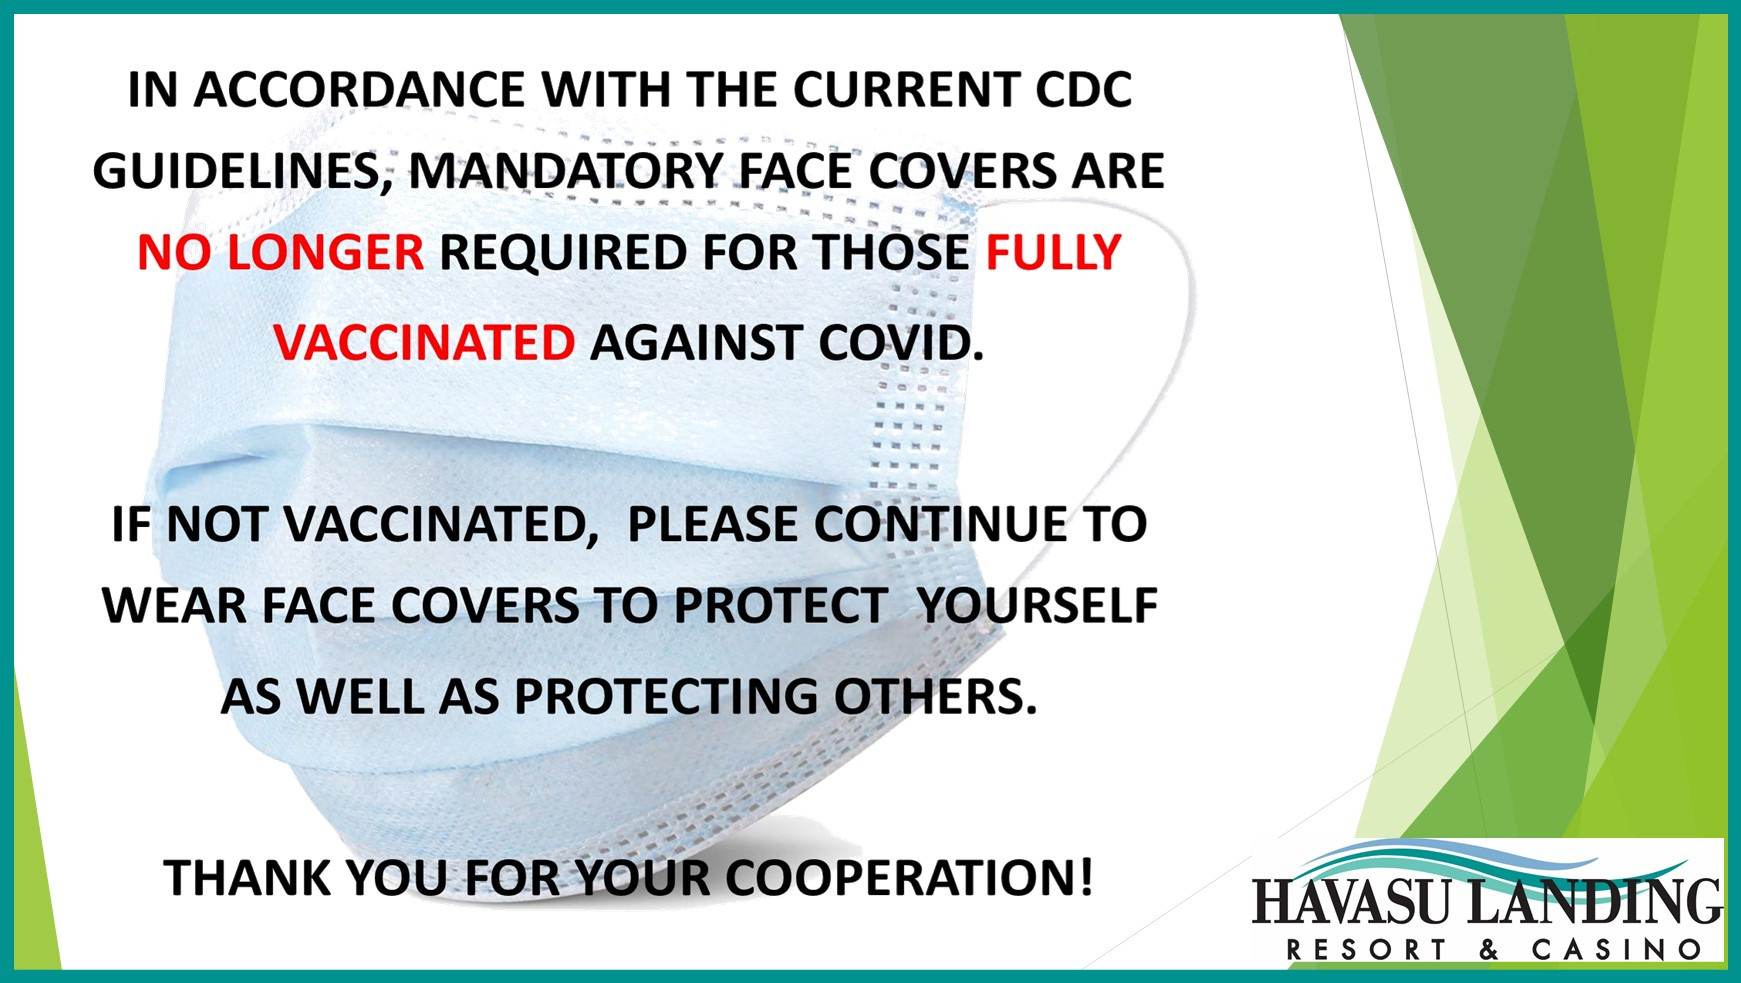 CDC COVID Mask Guidelines